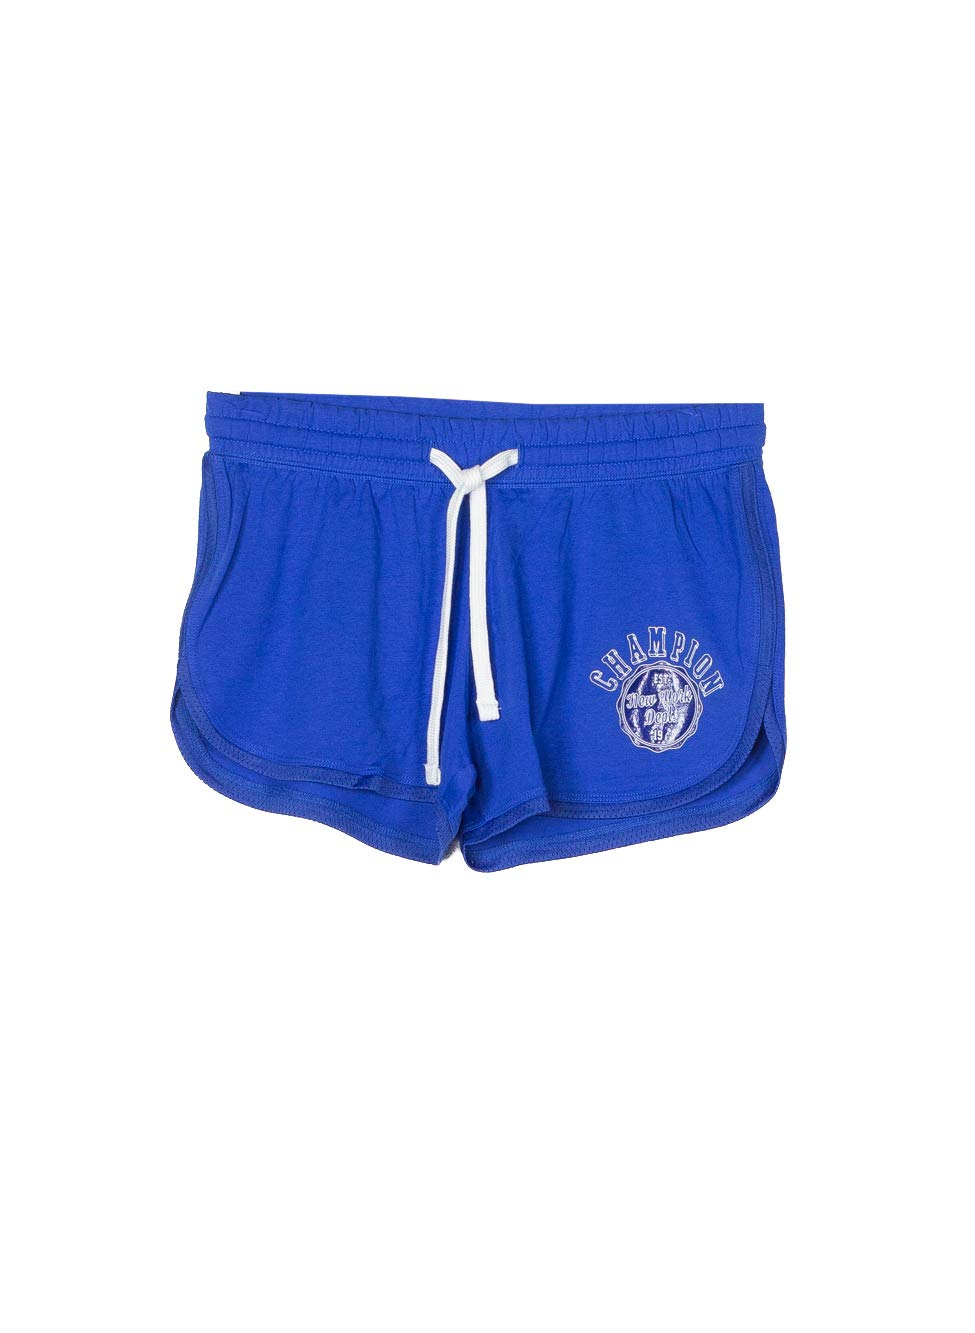 Champion Short Mujer Light Cotton Jersey Gr.150 Azul Royal (Blue Royal dzb)